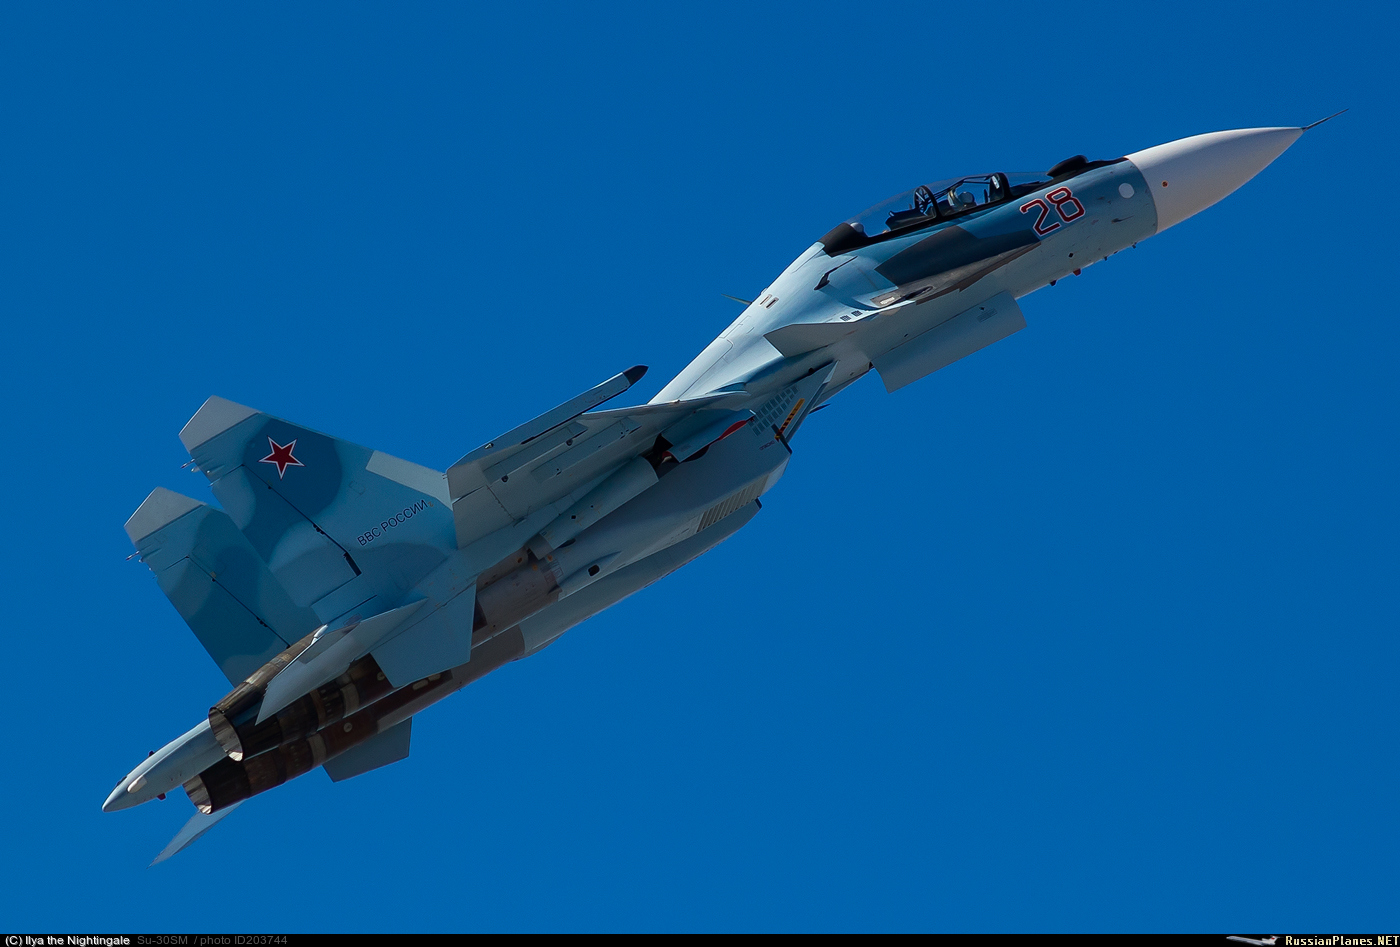 http://russianplanes.net/images/to204000/203744.jpg